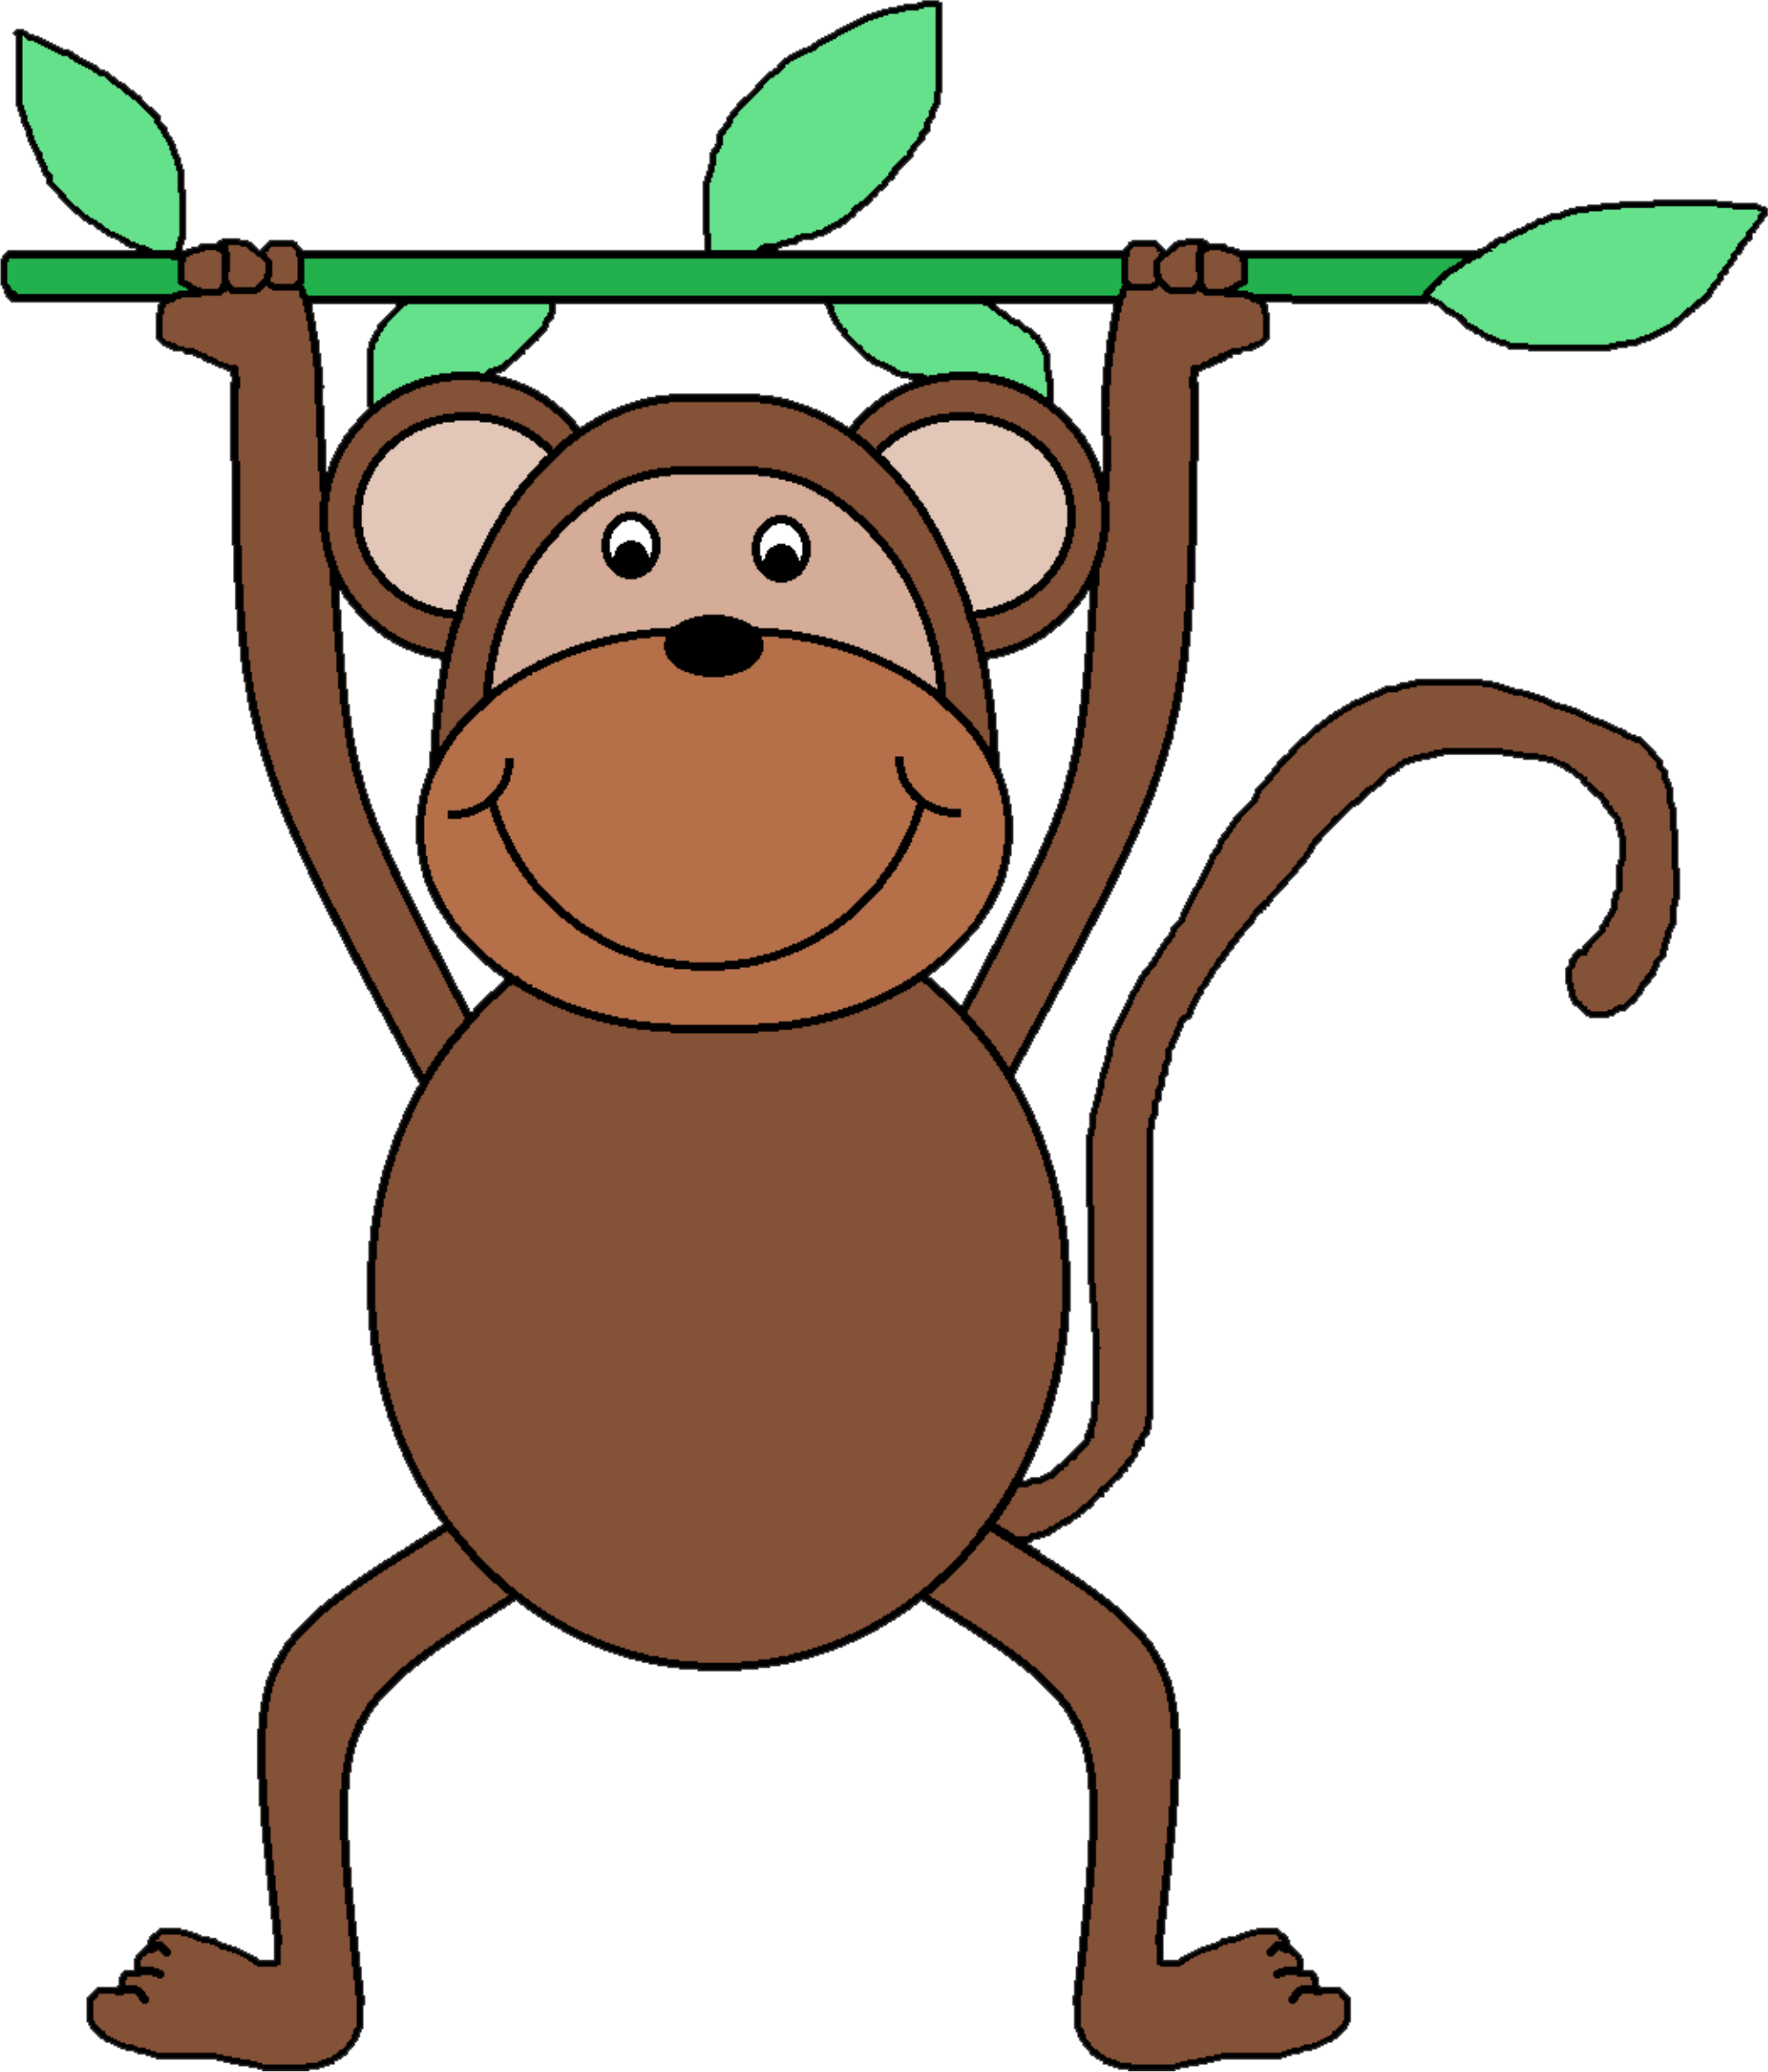 clipart free download Monkey clip art big. Monkeys clipart basic.